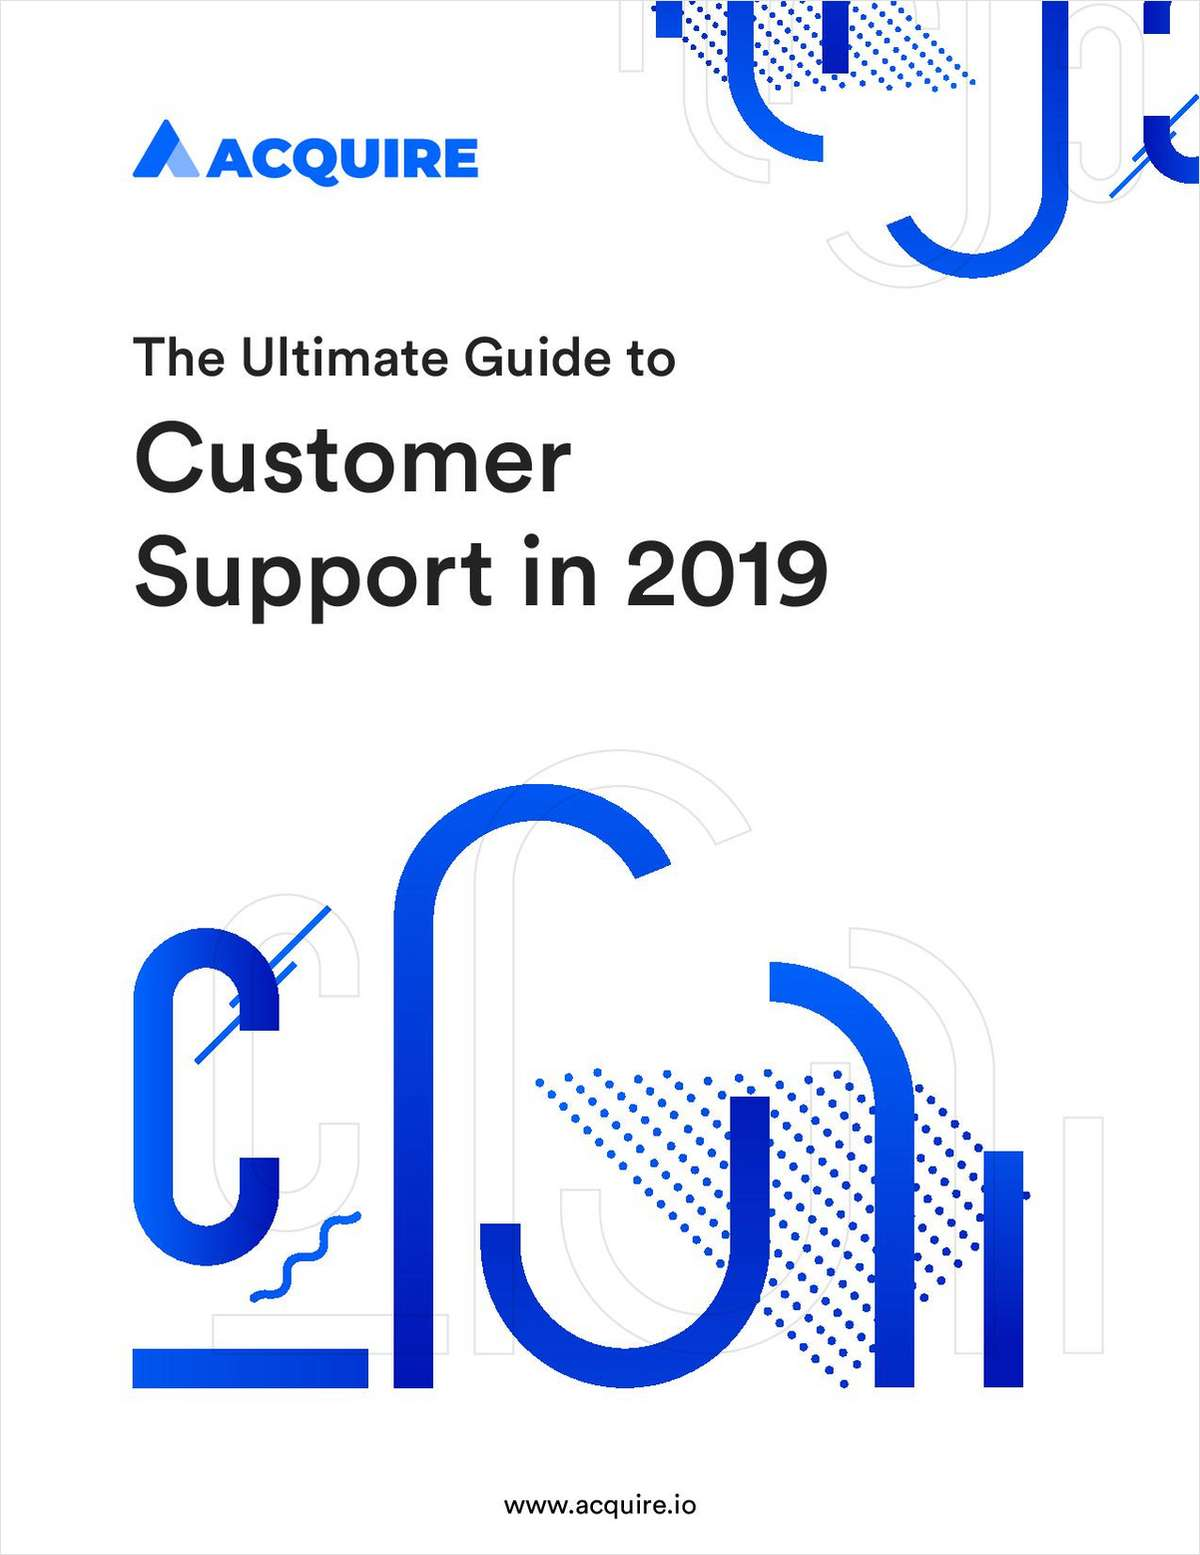 An Ultimate Guide to Customer Support in 2019